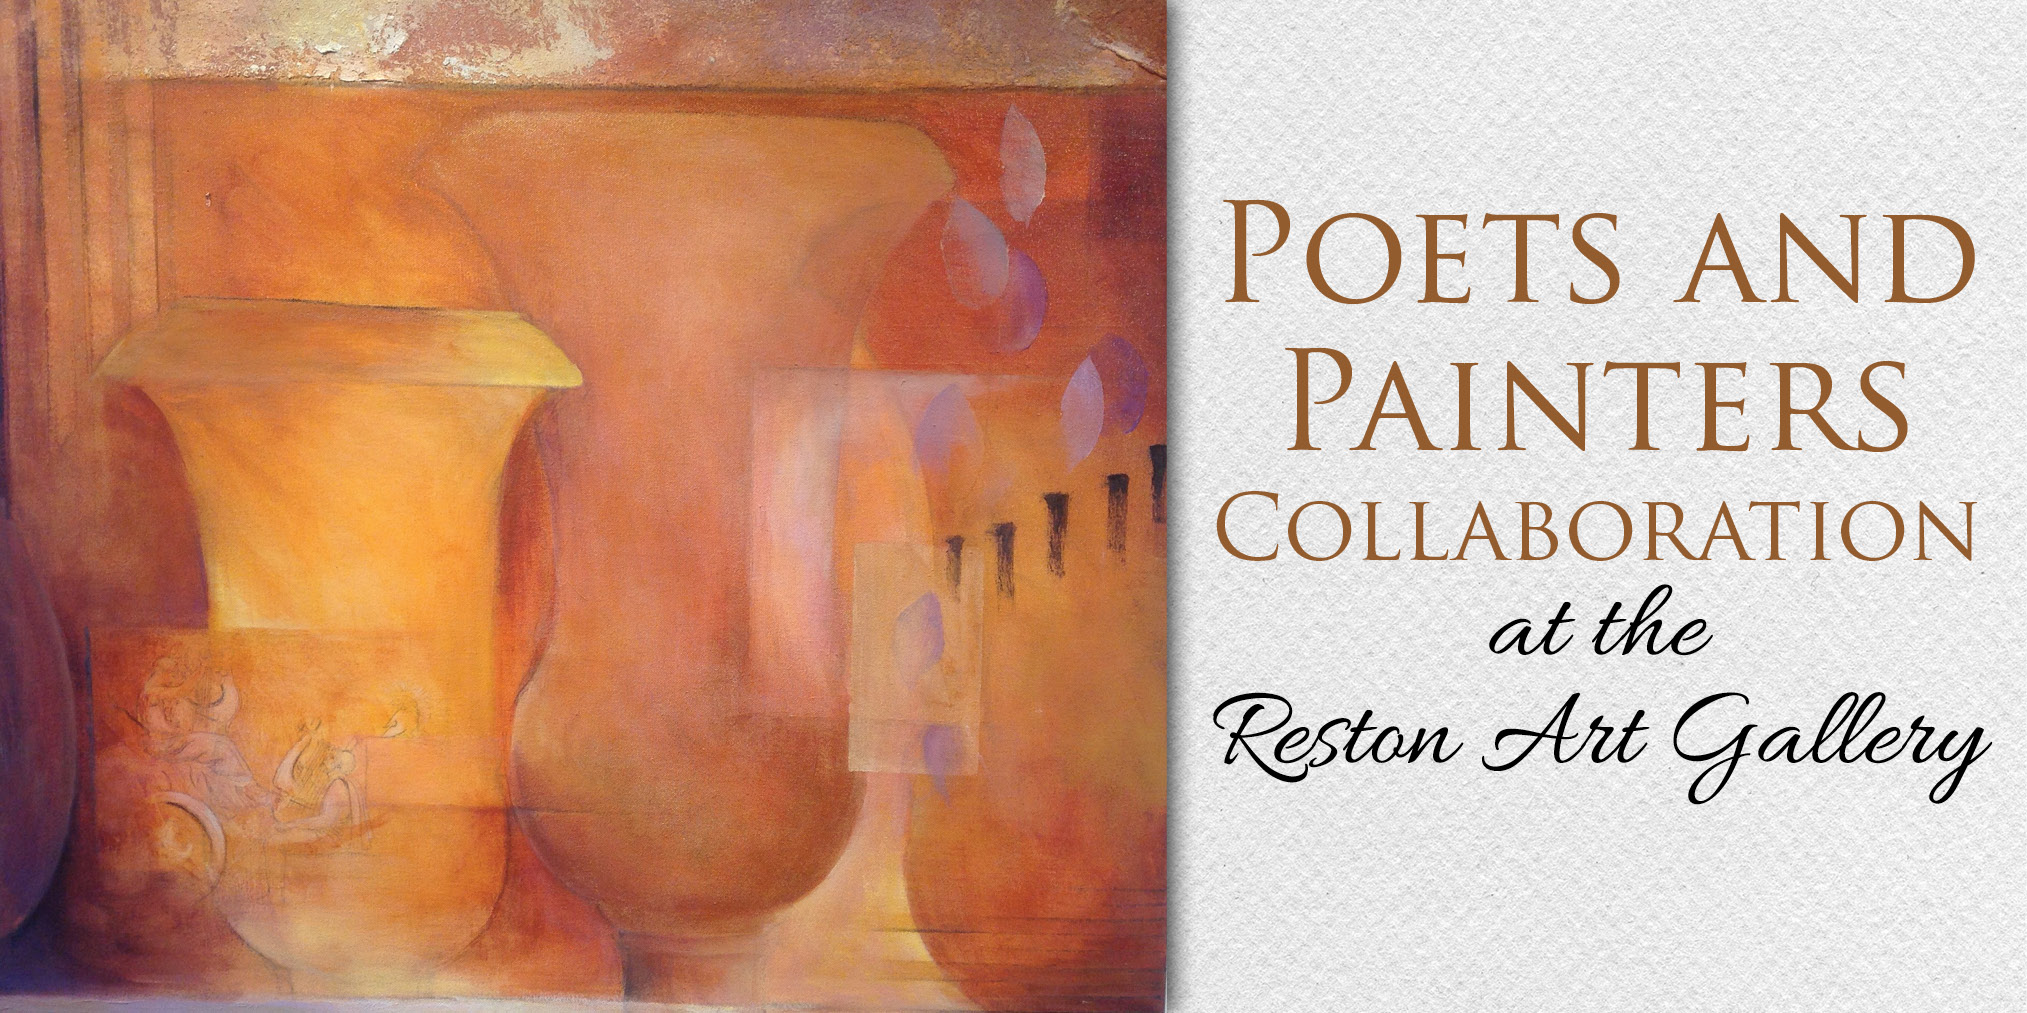 Poets and Painters Collaboration at the Reston Art Gallery